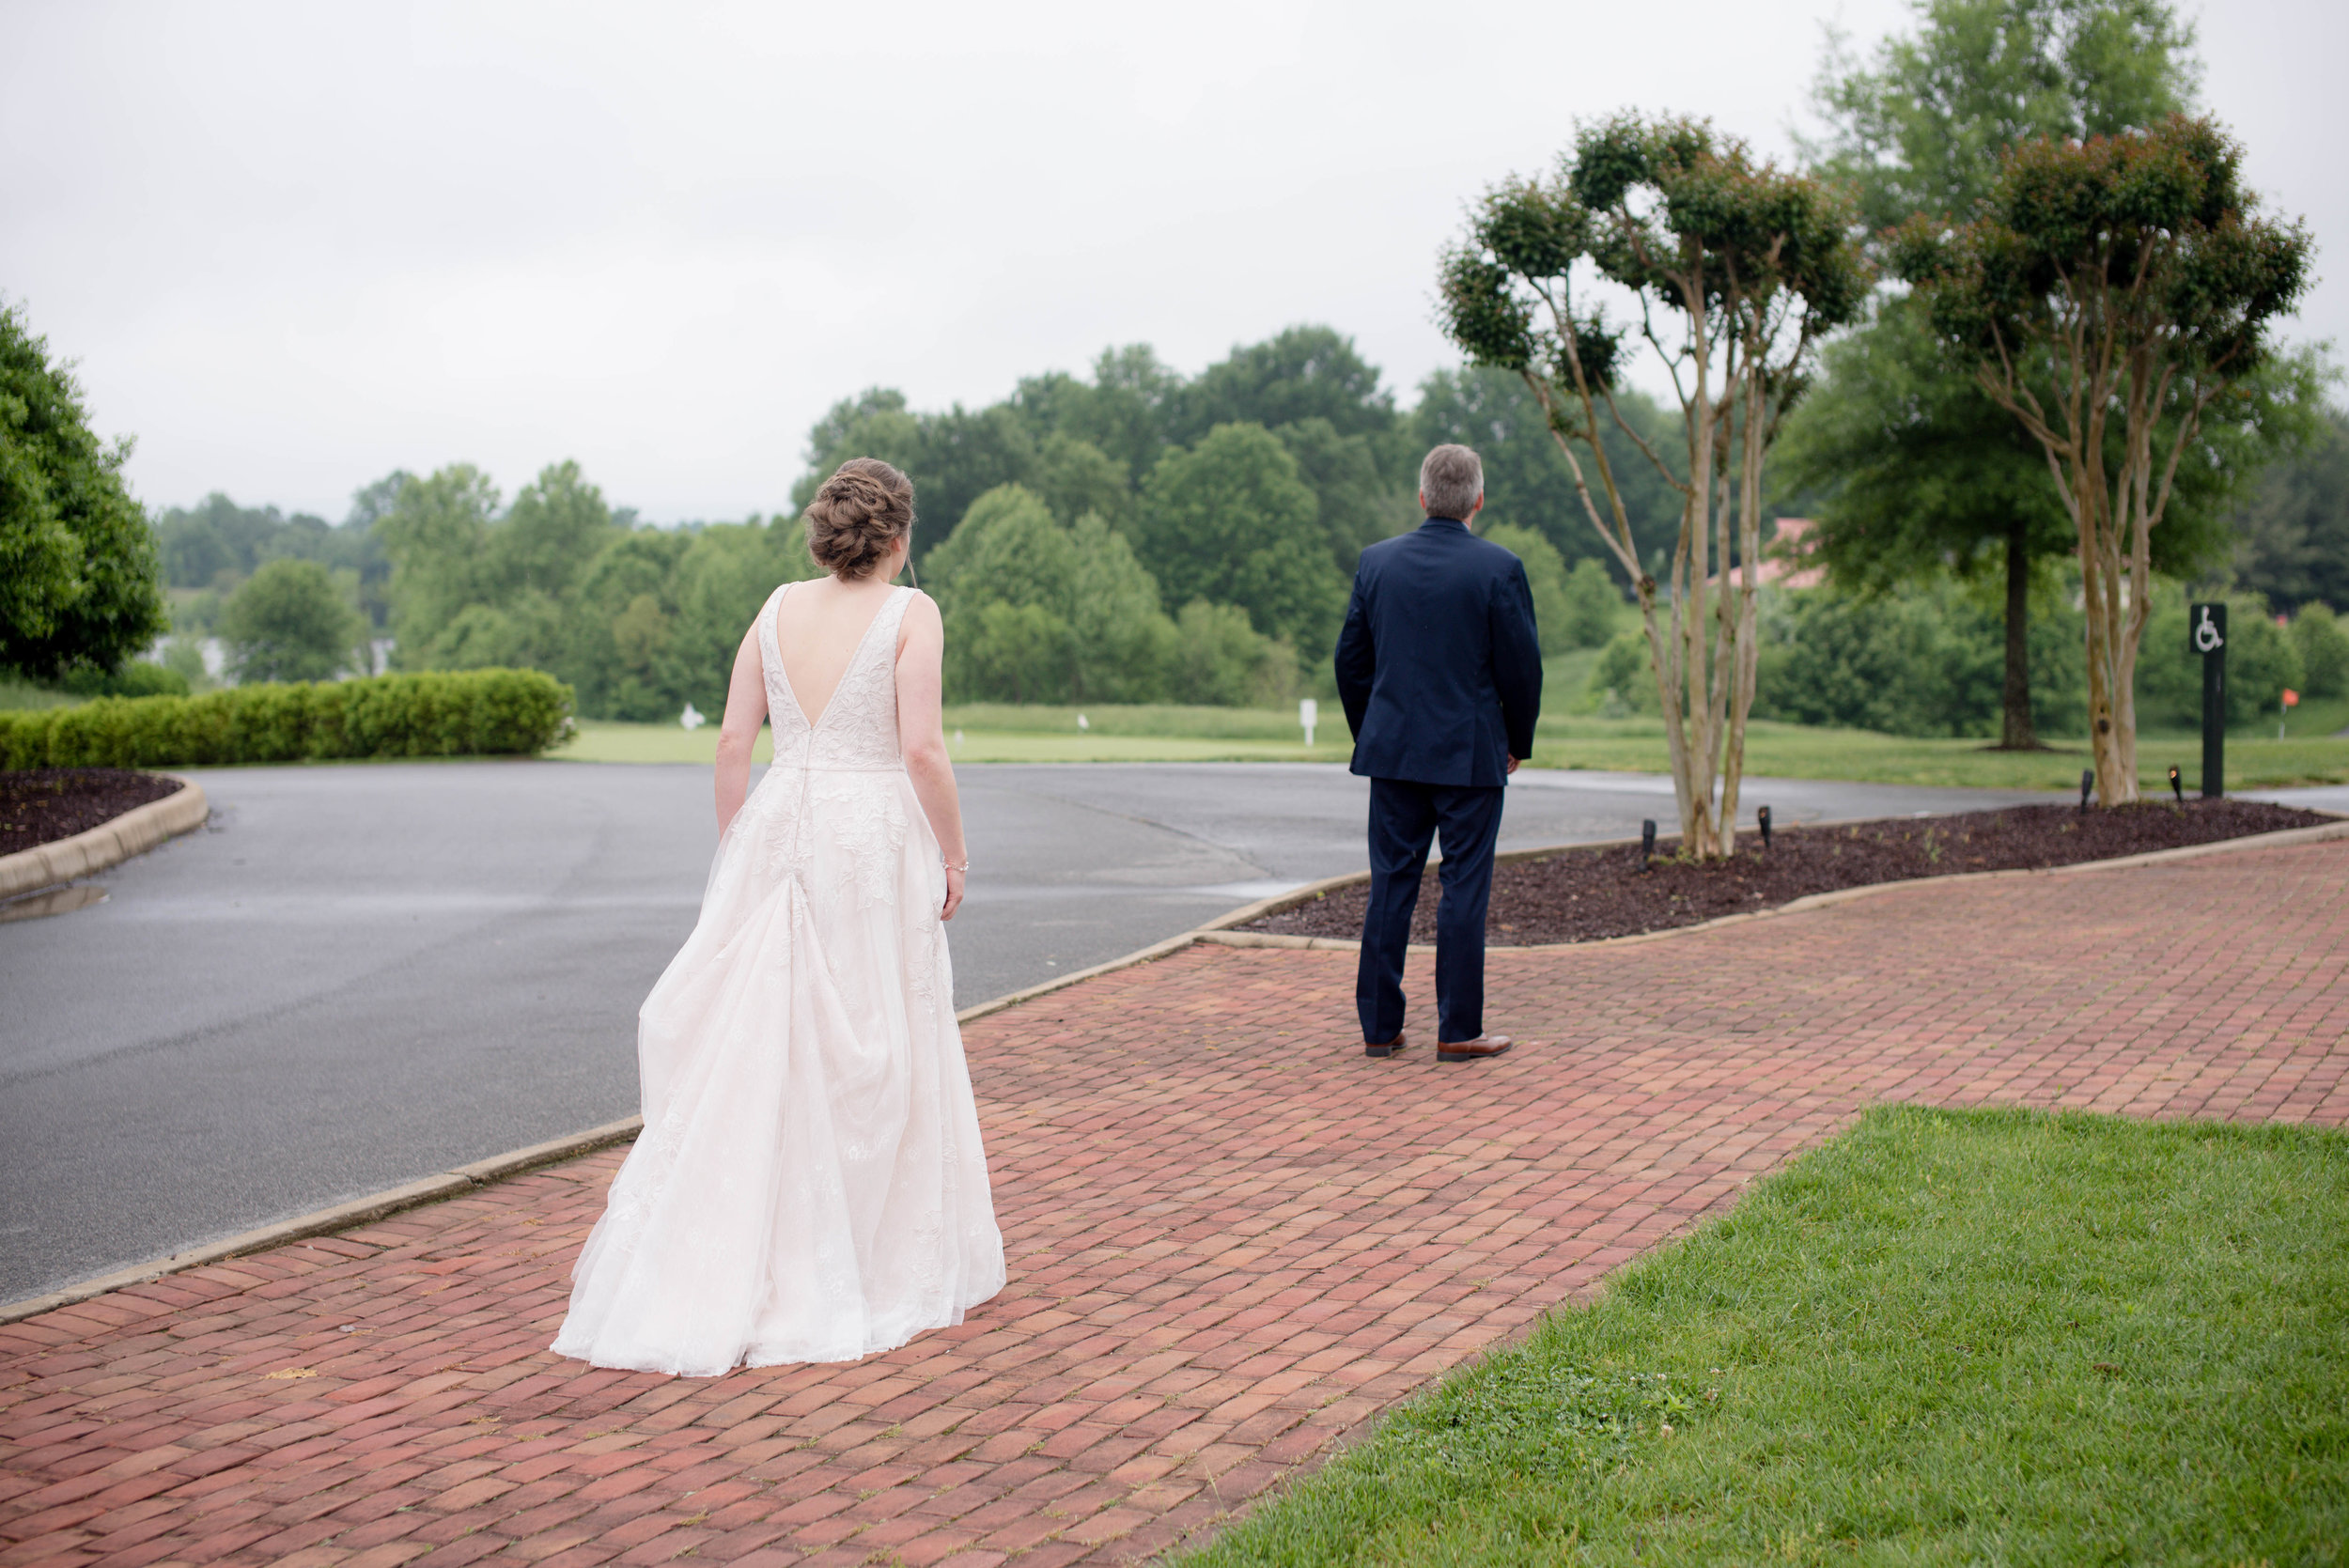 blue-ridge-wedding-ashley-nicole-photography-restoration-hall-crozetphotography-restorationhall-charlottesville-wedding_dadfirstlook-1.jpg